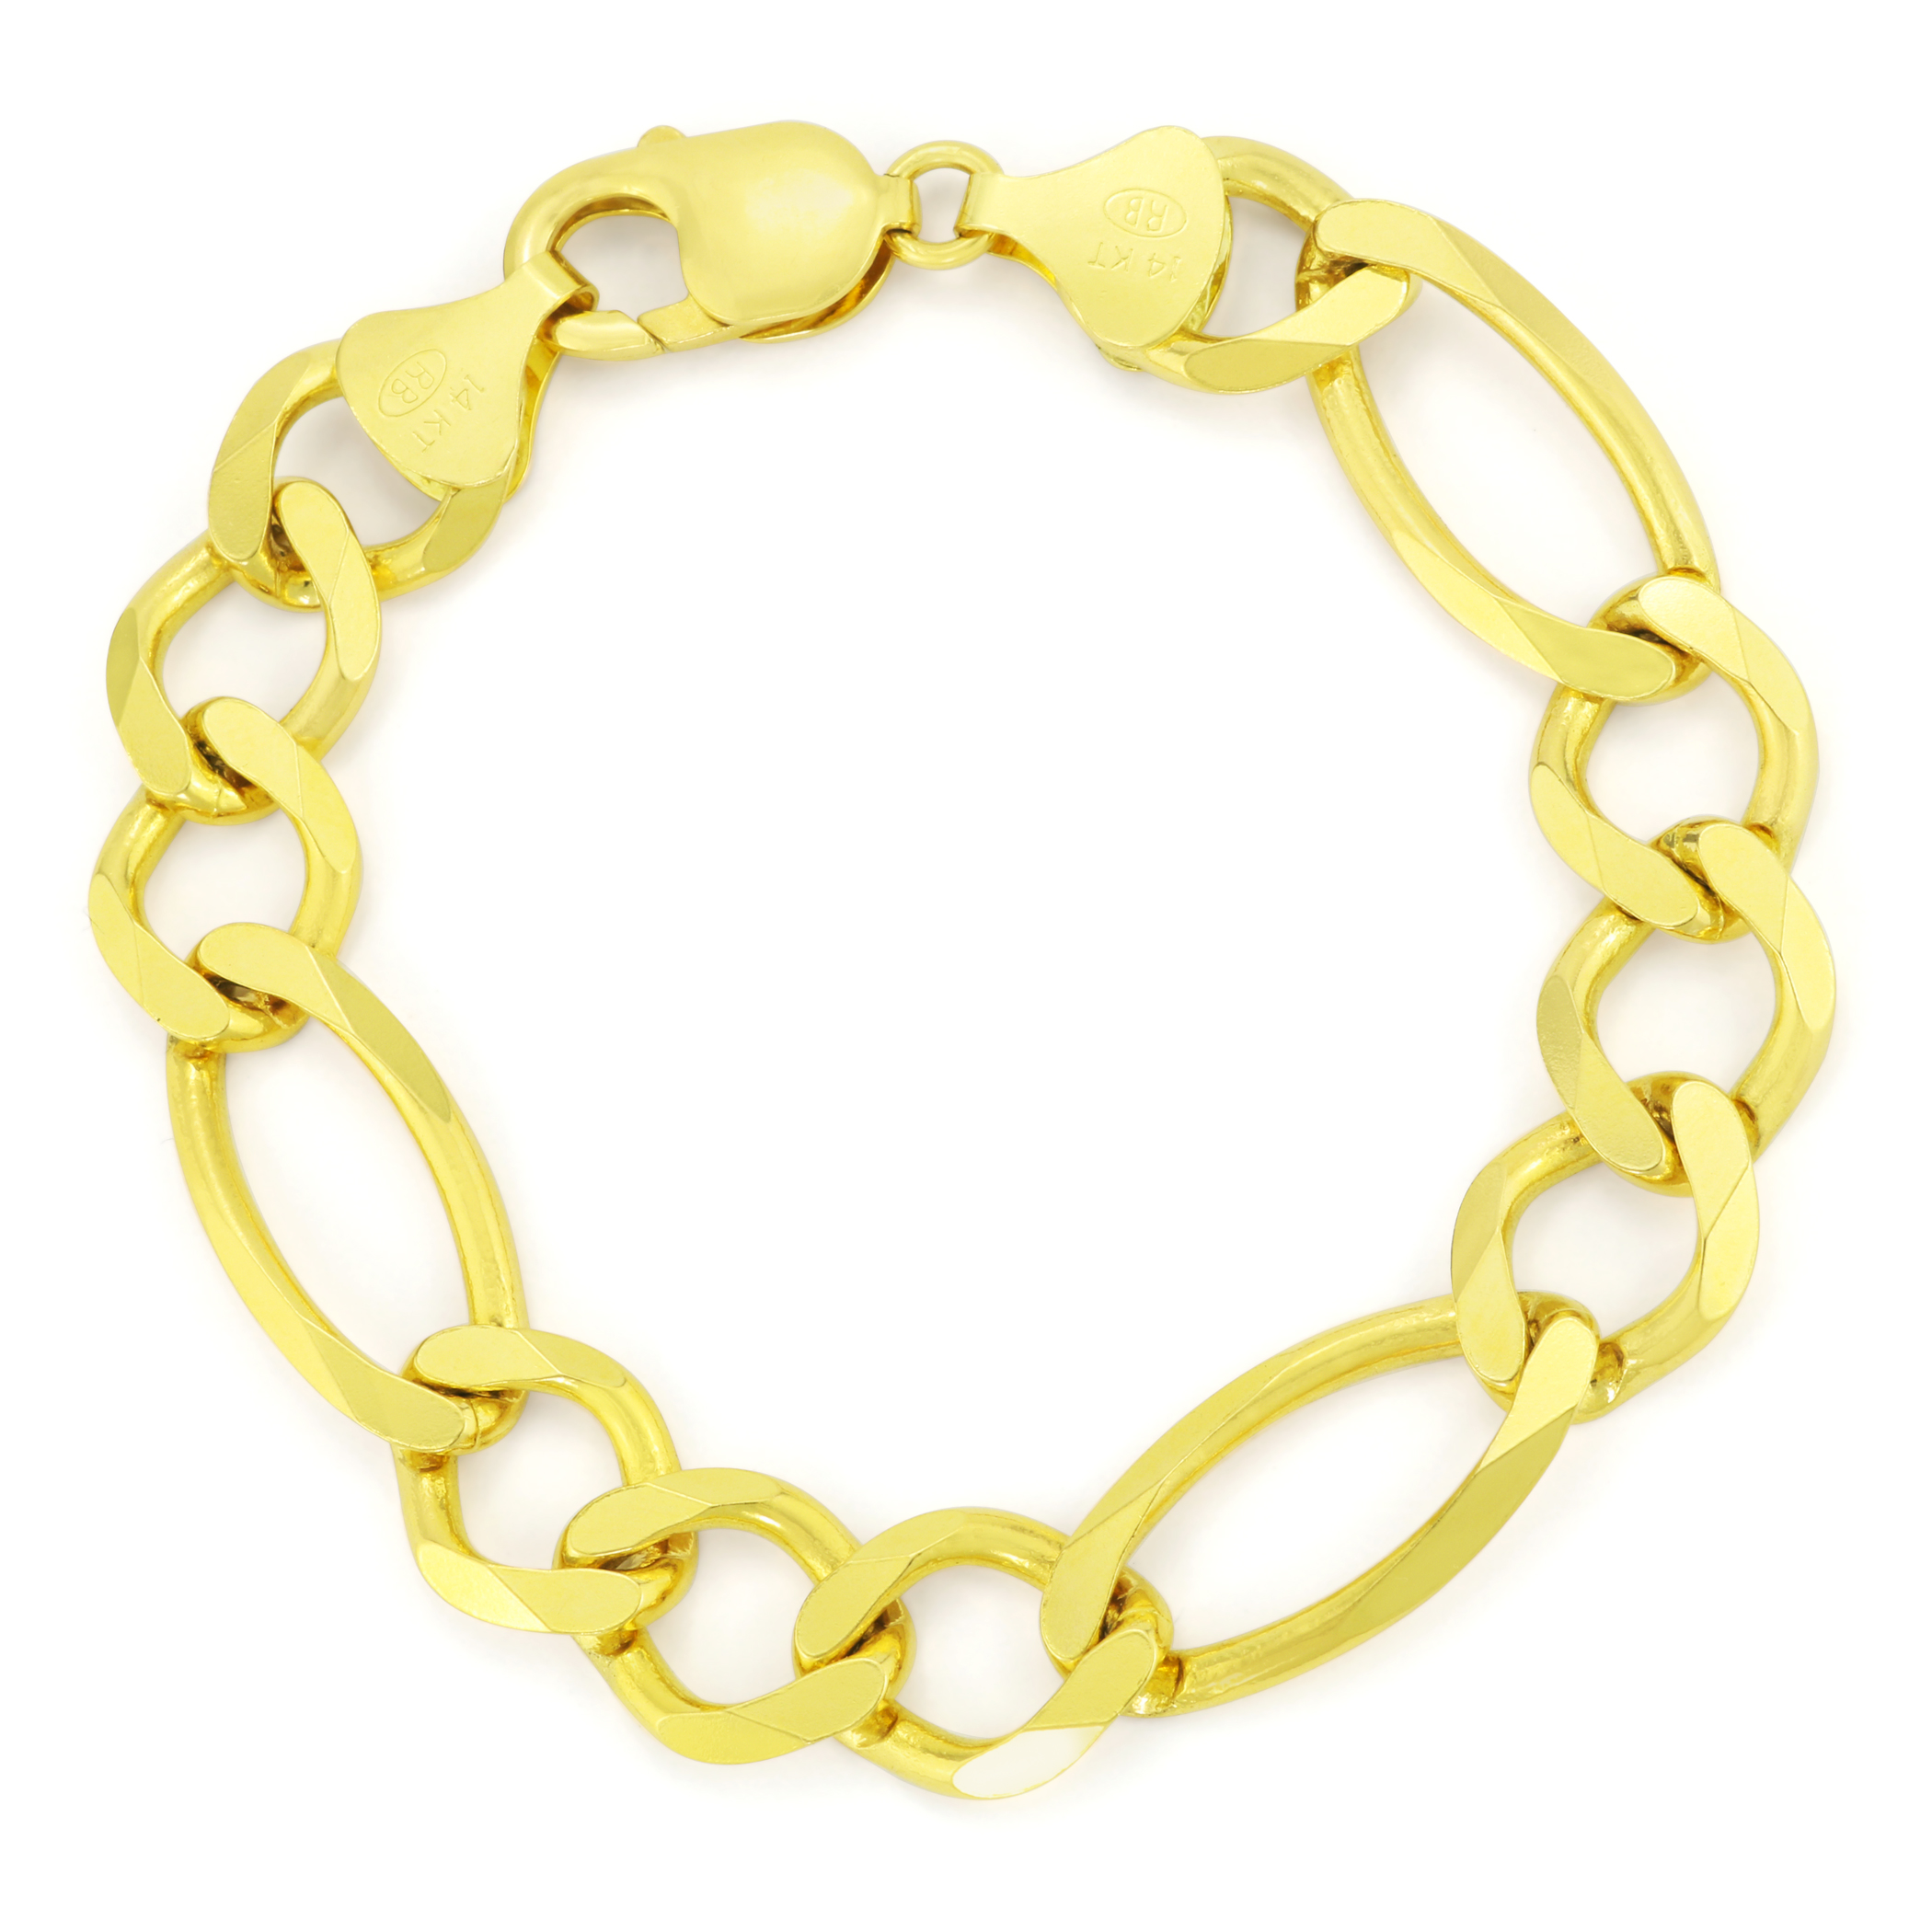 673afa18ba624 Details about Real 14K Yellow Gold Solid Mens 12mm LARGE Figaro Chain Link  Bracelet 8